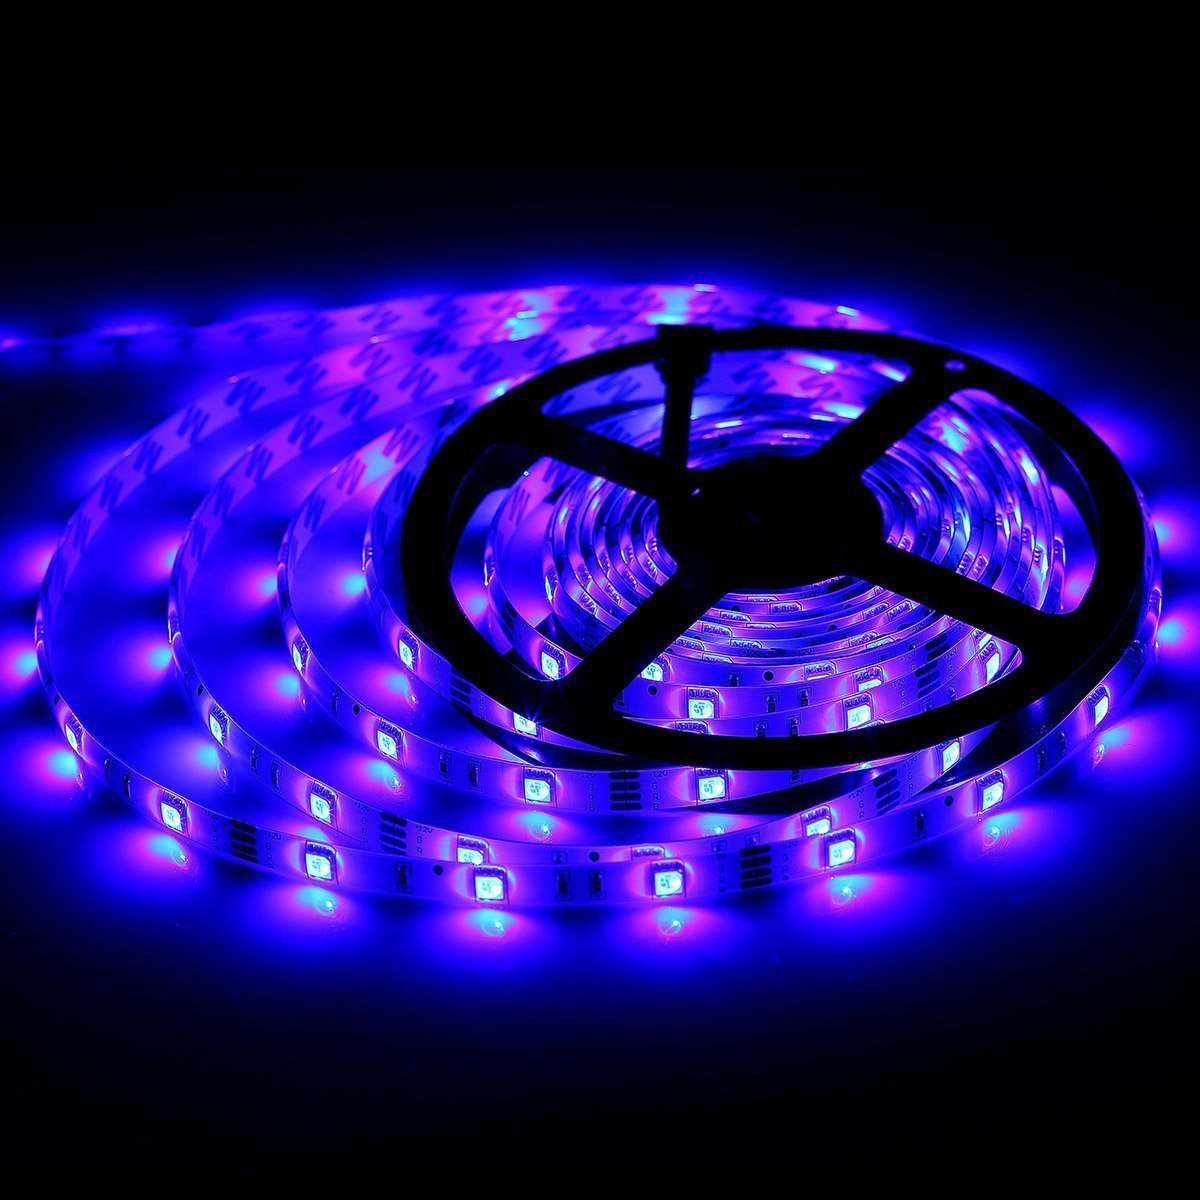 bmouo 2 reels 12v waterproof flexible rgb led strip. Black Bedroom Furniture Sets. Home Design Ideas